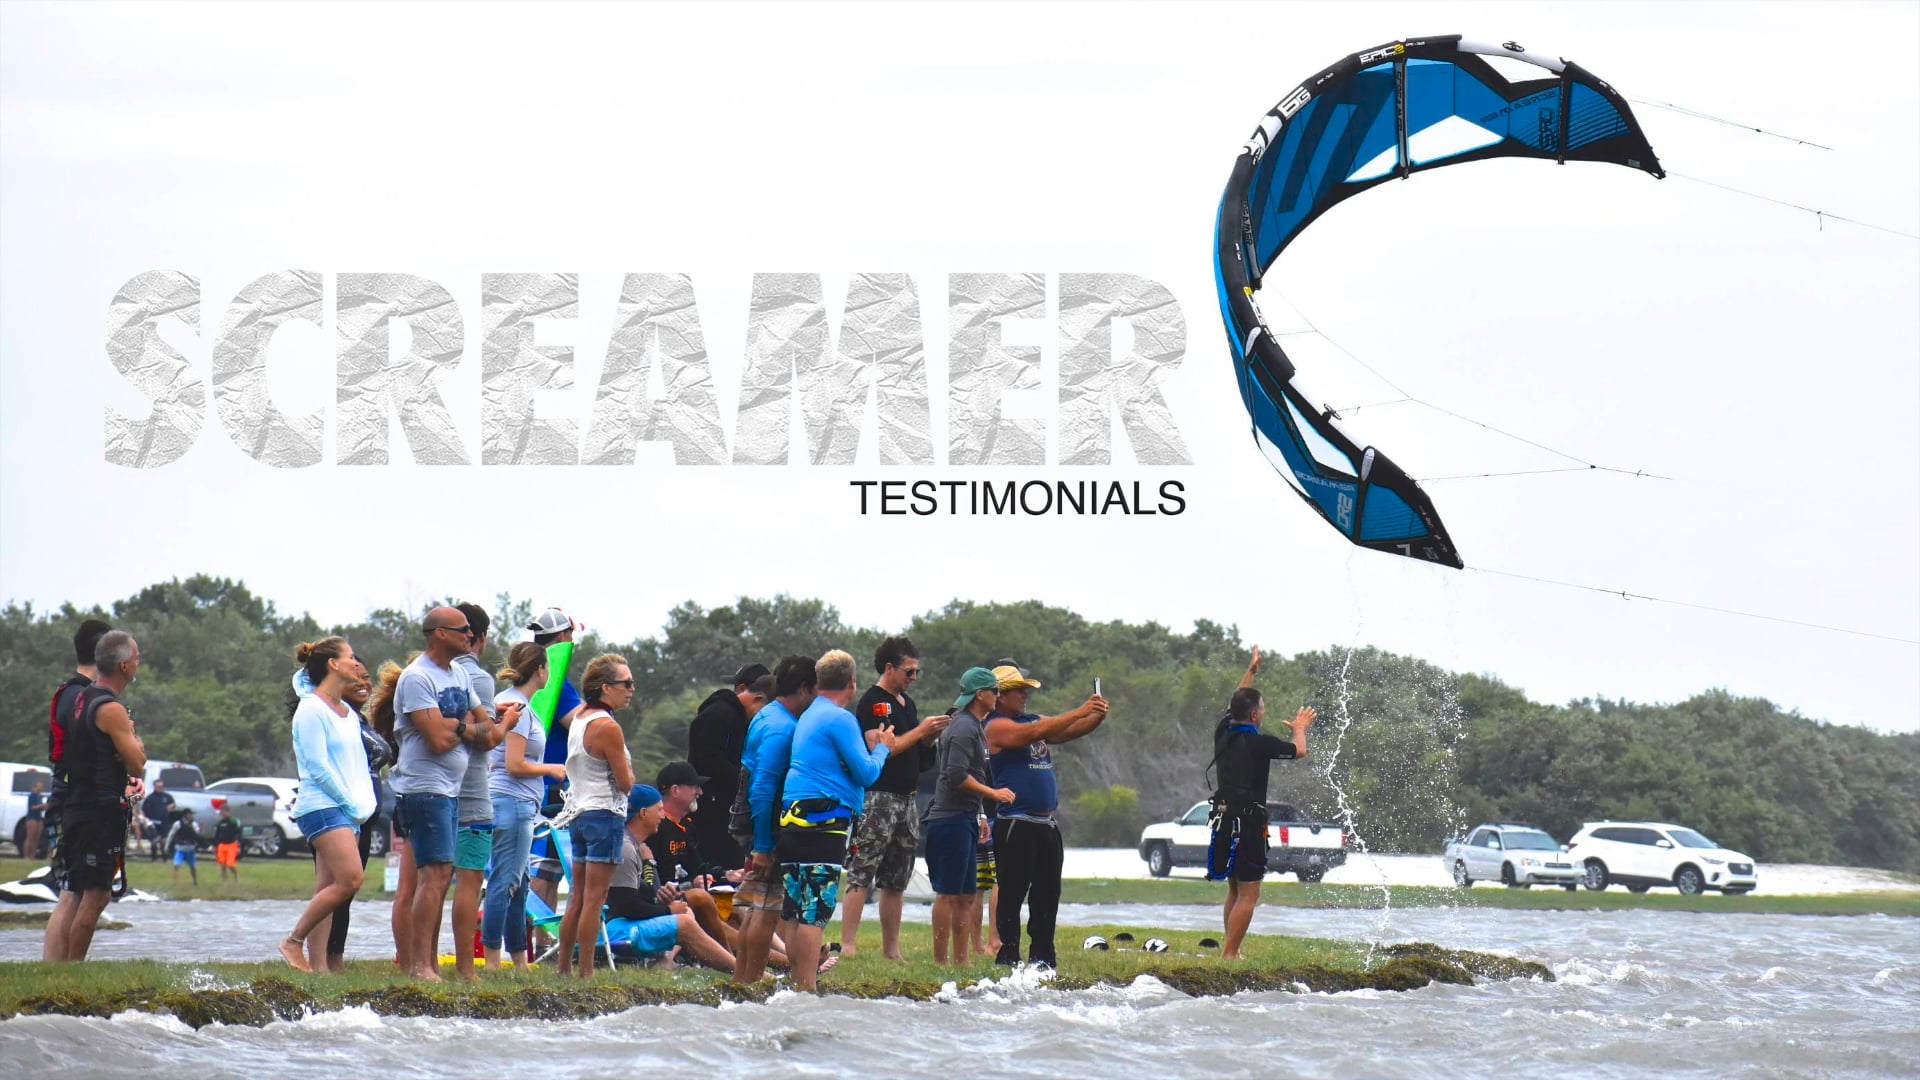 SCREAMER 6G testimonial from kiters - with Epic Kites Kiteboarding